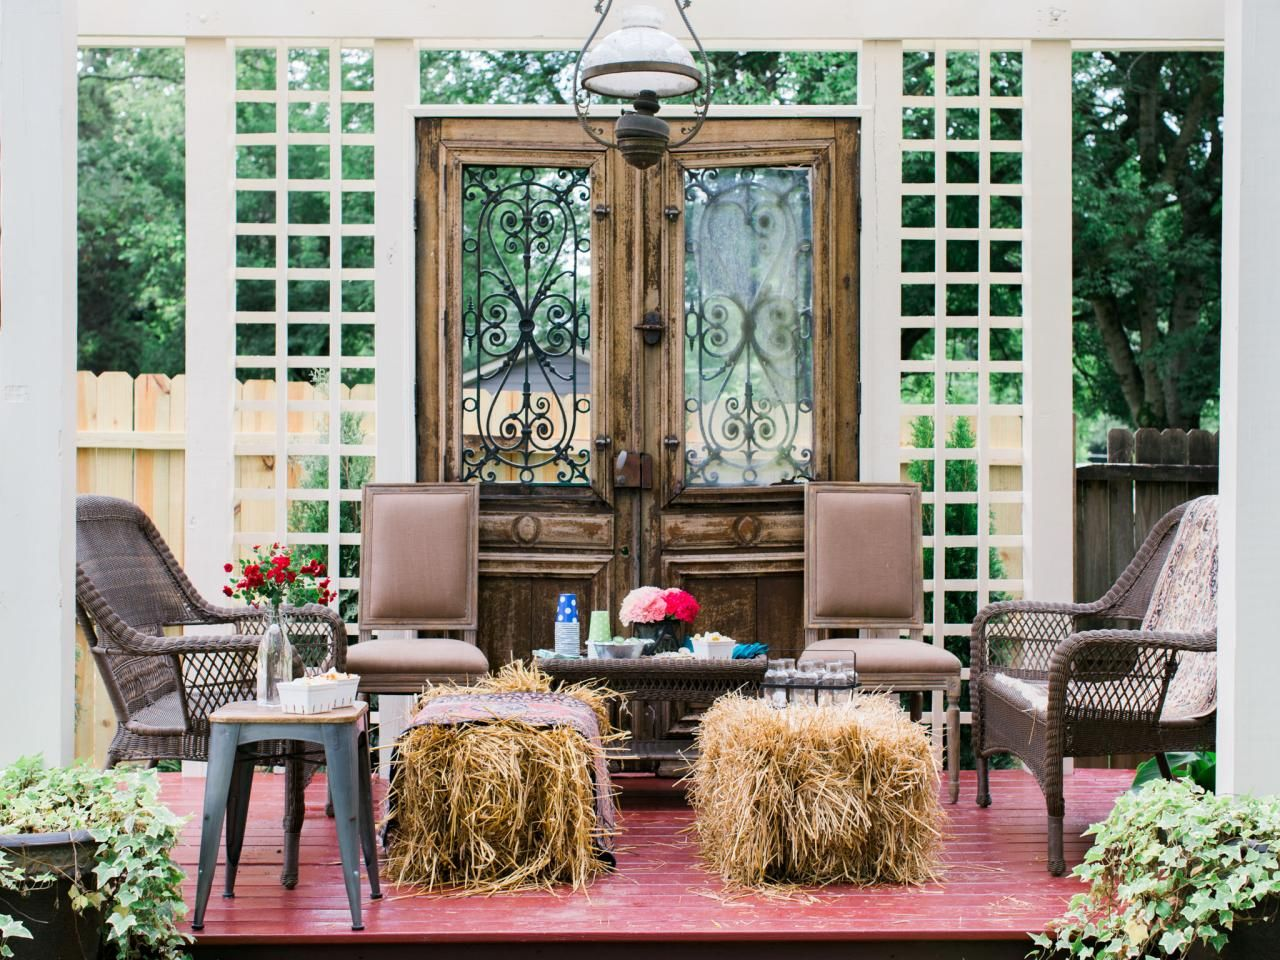 With a simple mix of indoor and outdoor furnishings and easy supermarket upgrades, here are 10 ways to tackle an outdoor party that's equal parts pretty and practical.